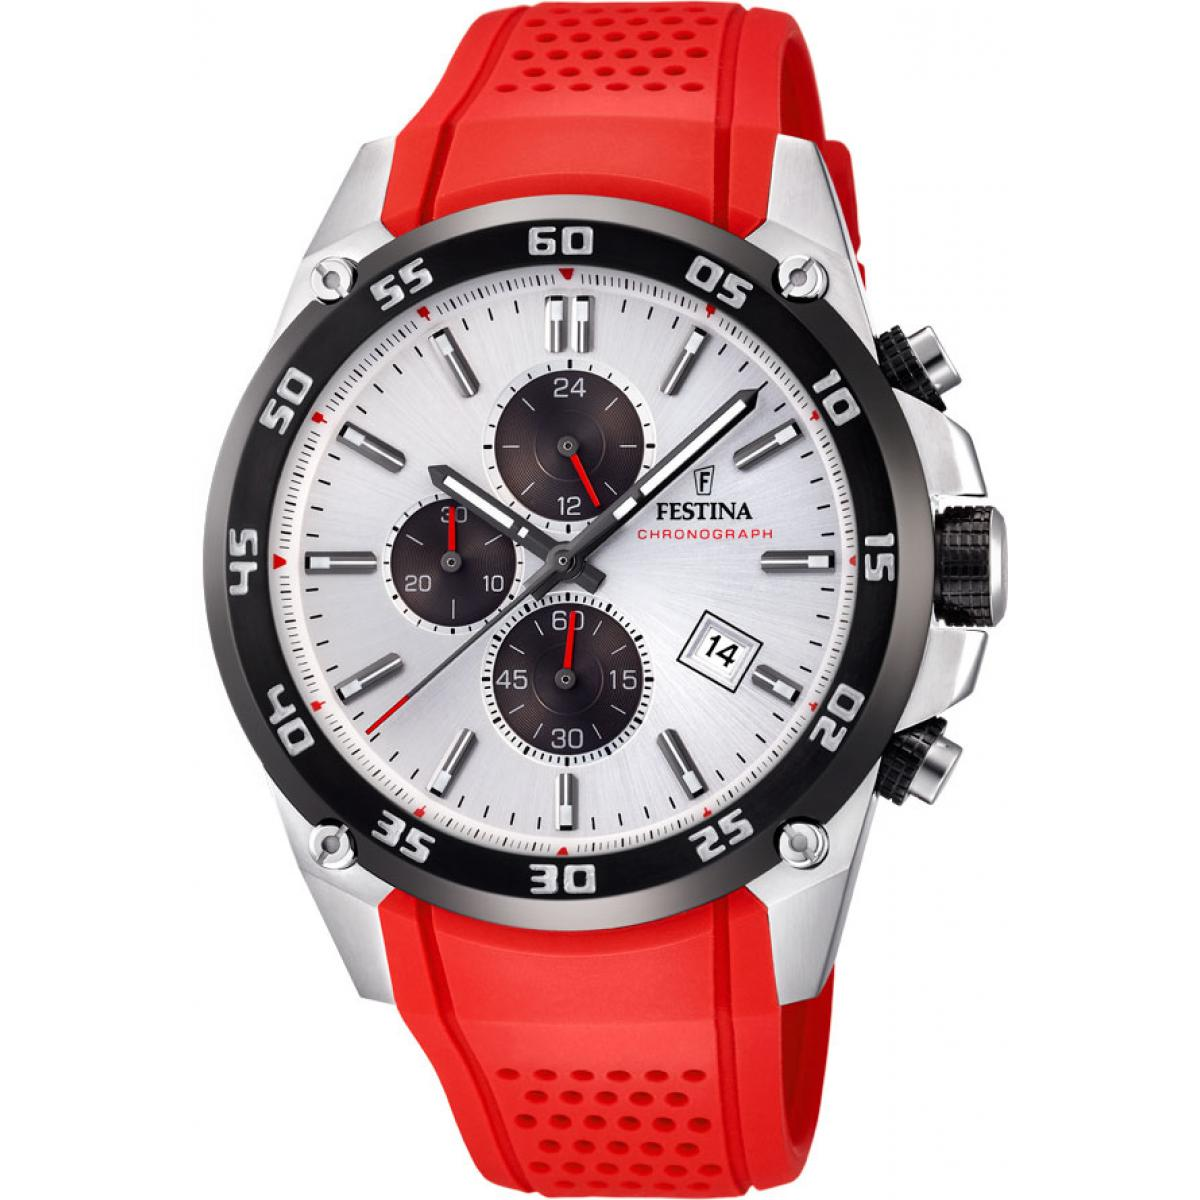 Montre Festina Originals F20330-1 - Montre Chronographe Résine Rouge Homme